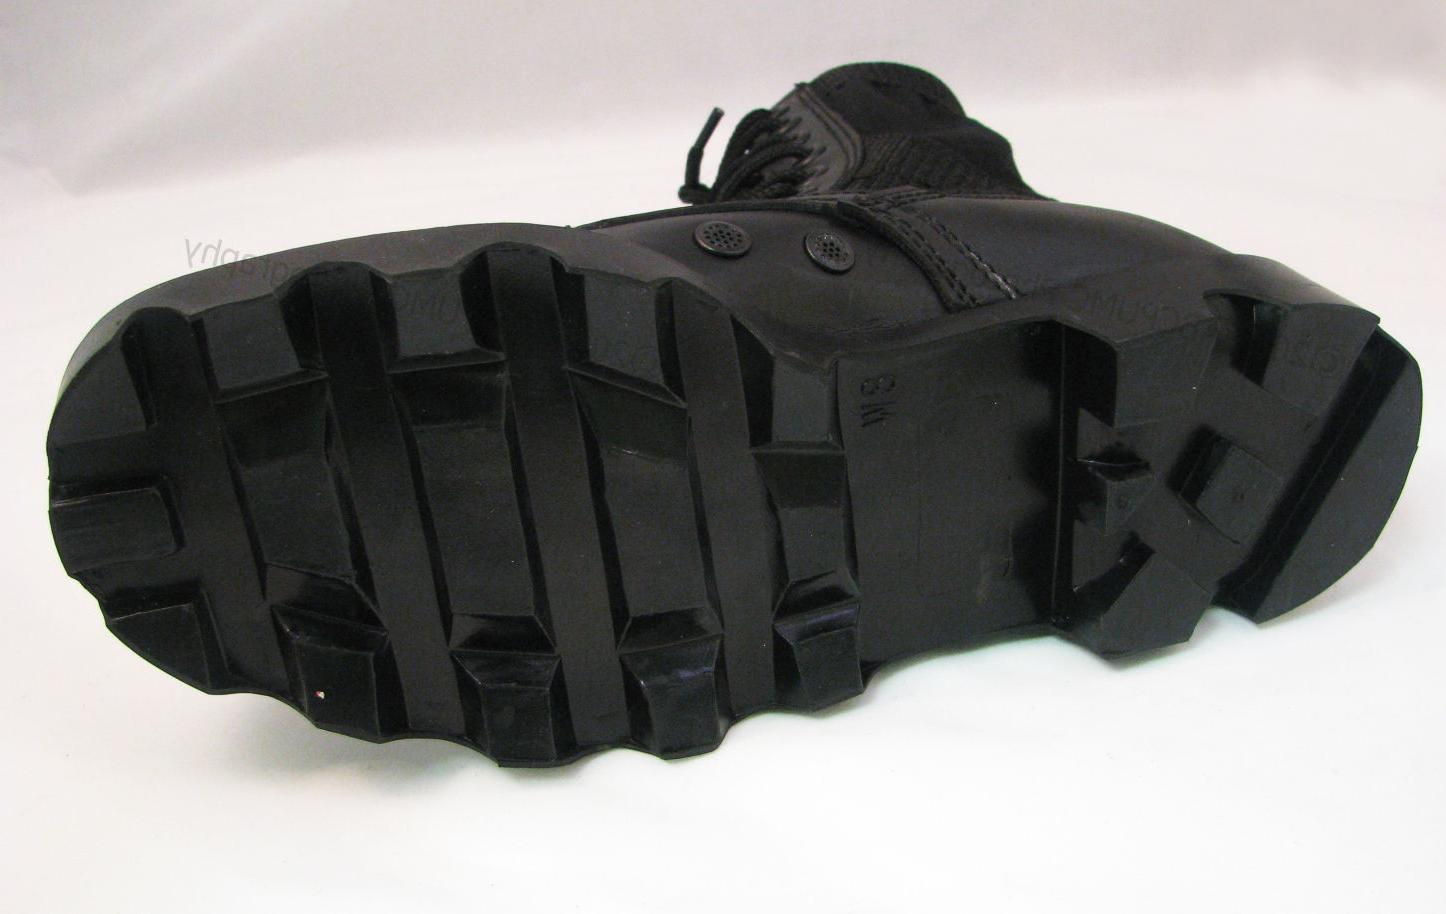 Brand Jungle Tactical Combat Military Shoes